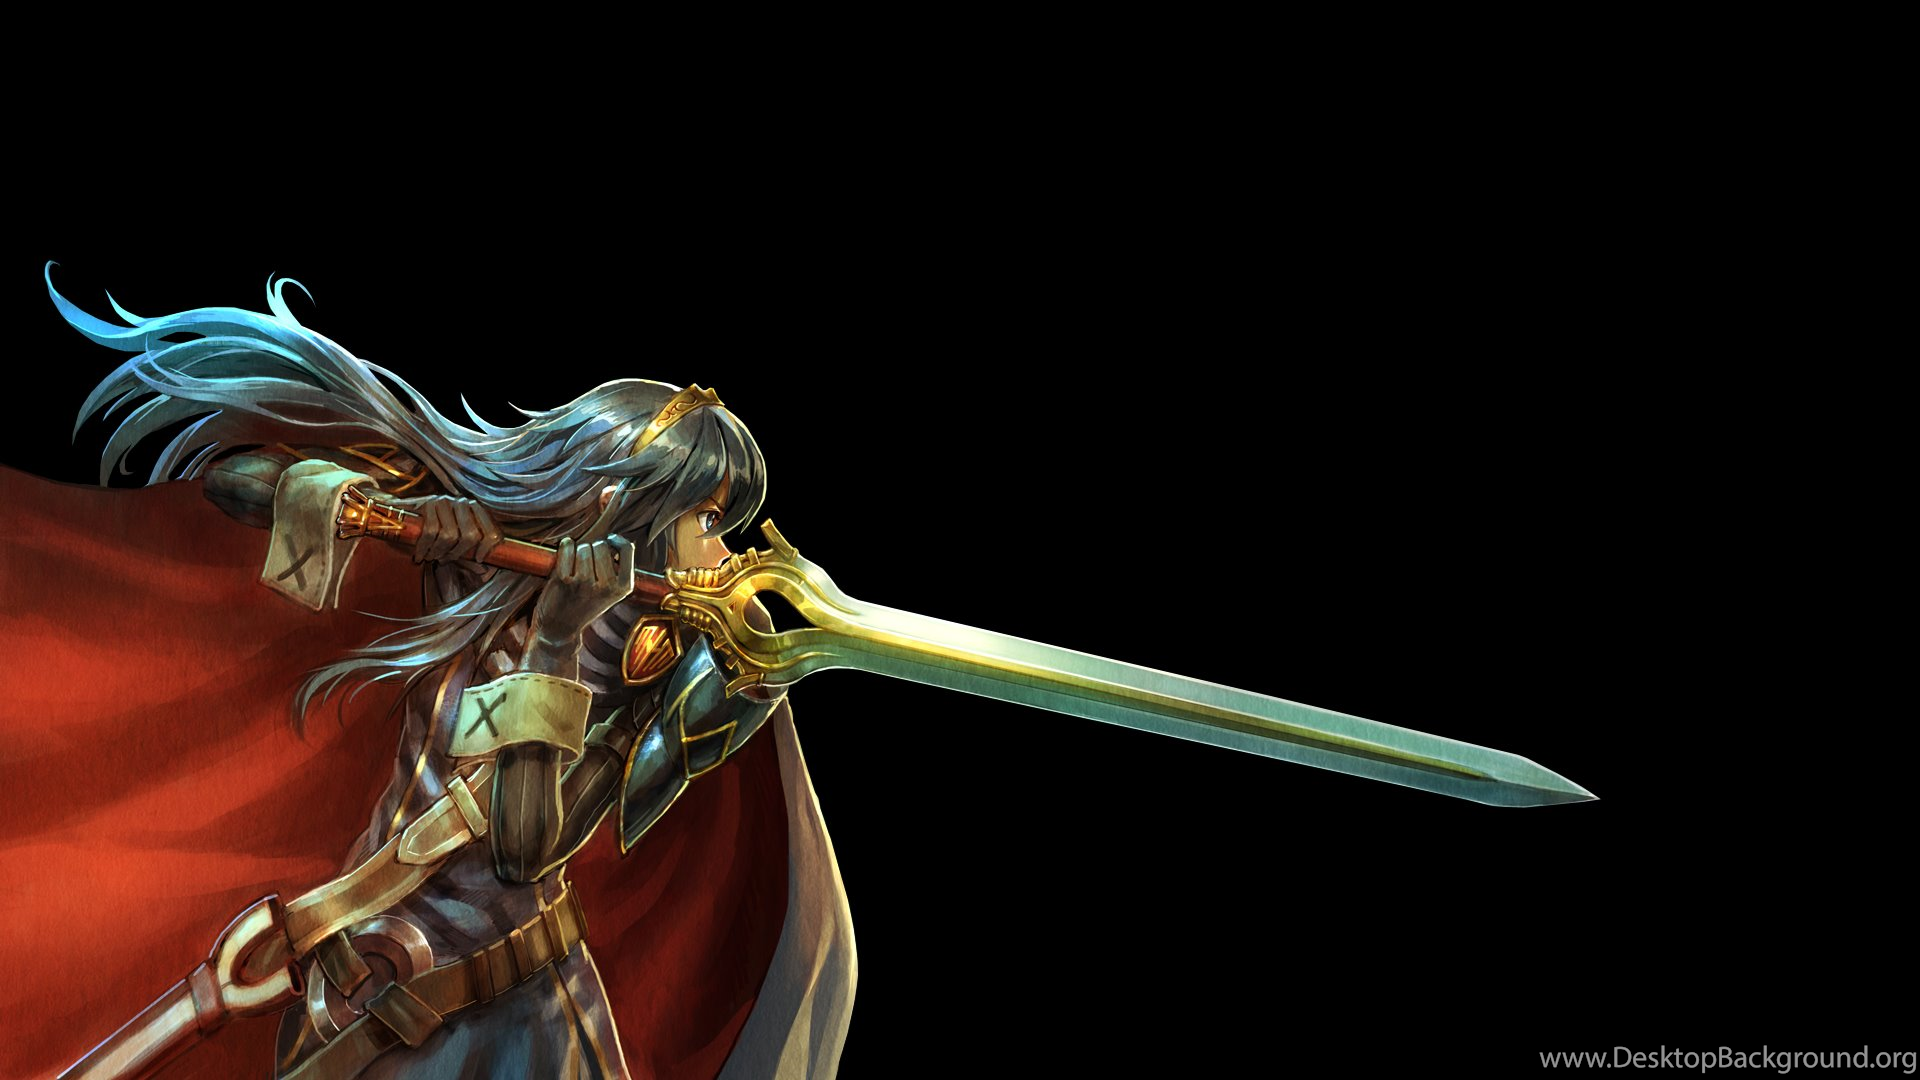 Lucina Fire Emblem Wallpapers Walldevil Best Free Hd Desktop